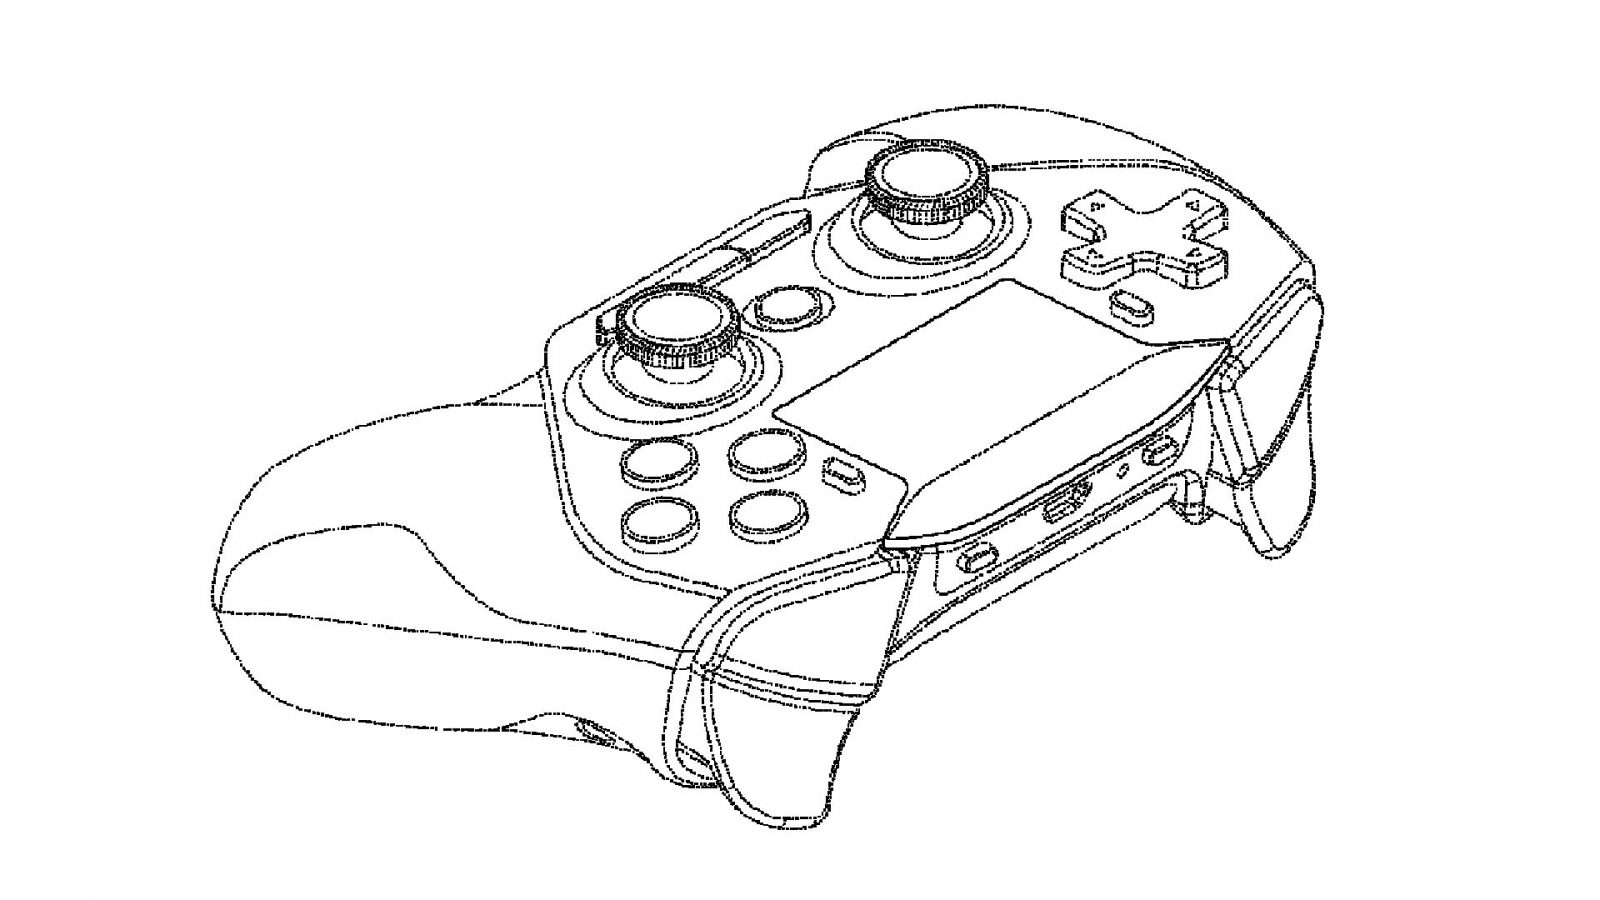 Intel patents Sony Dualshock-style gamepad likely fit for cloud gaming